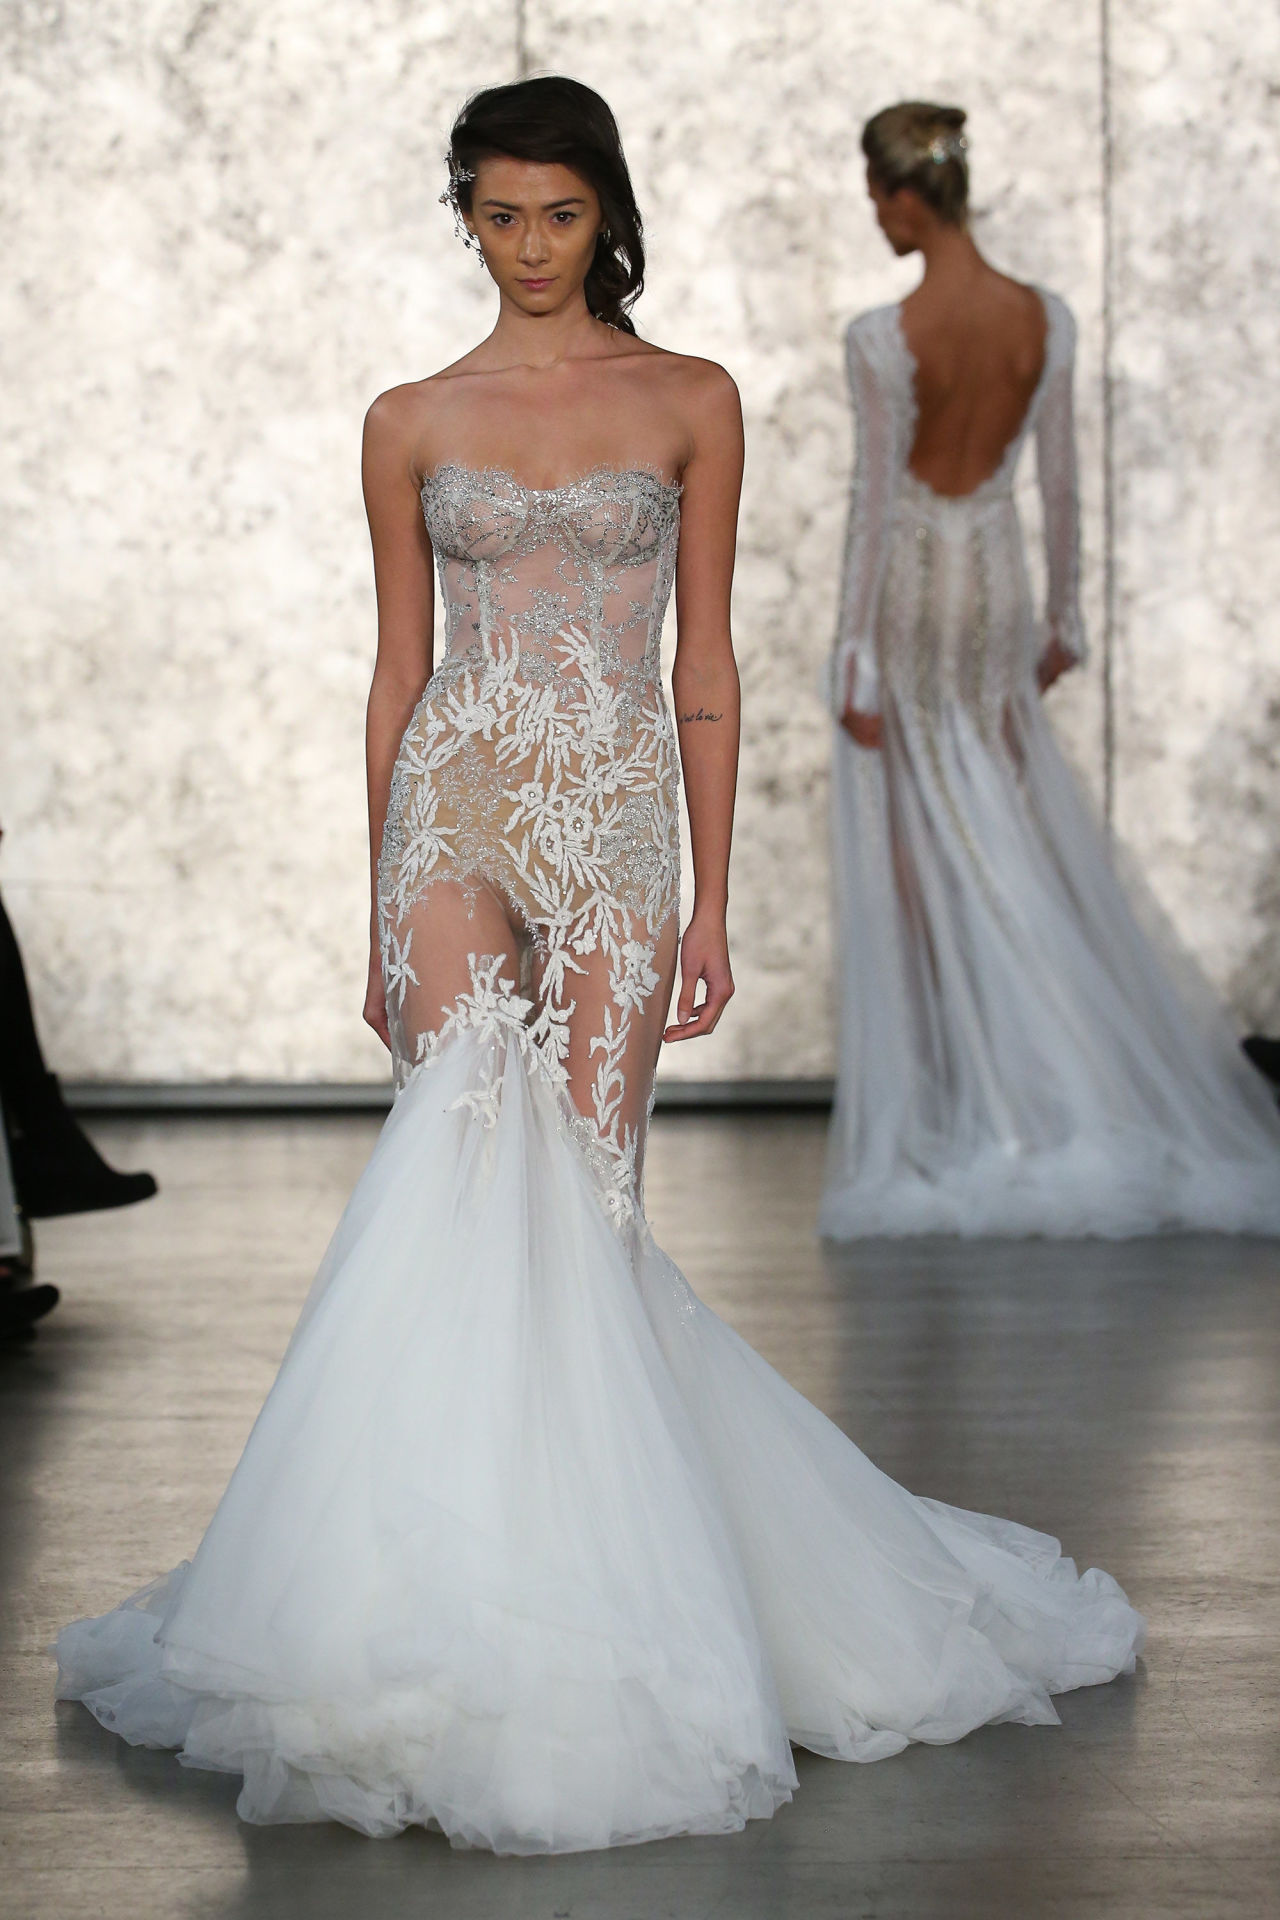 The naked dress trend takes hold at Bridal Fashion Week